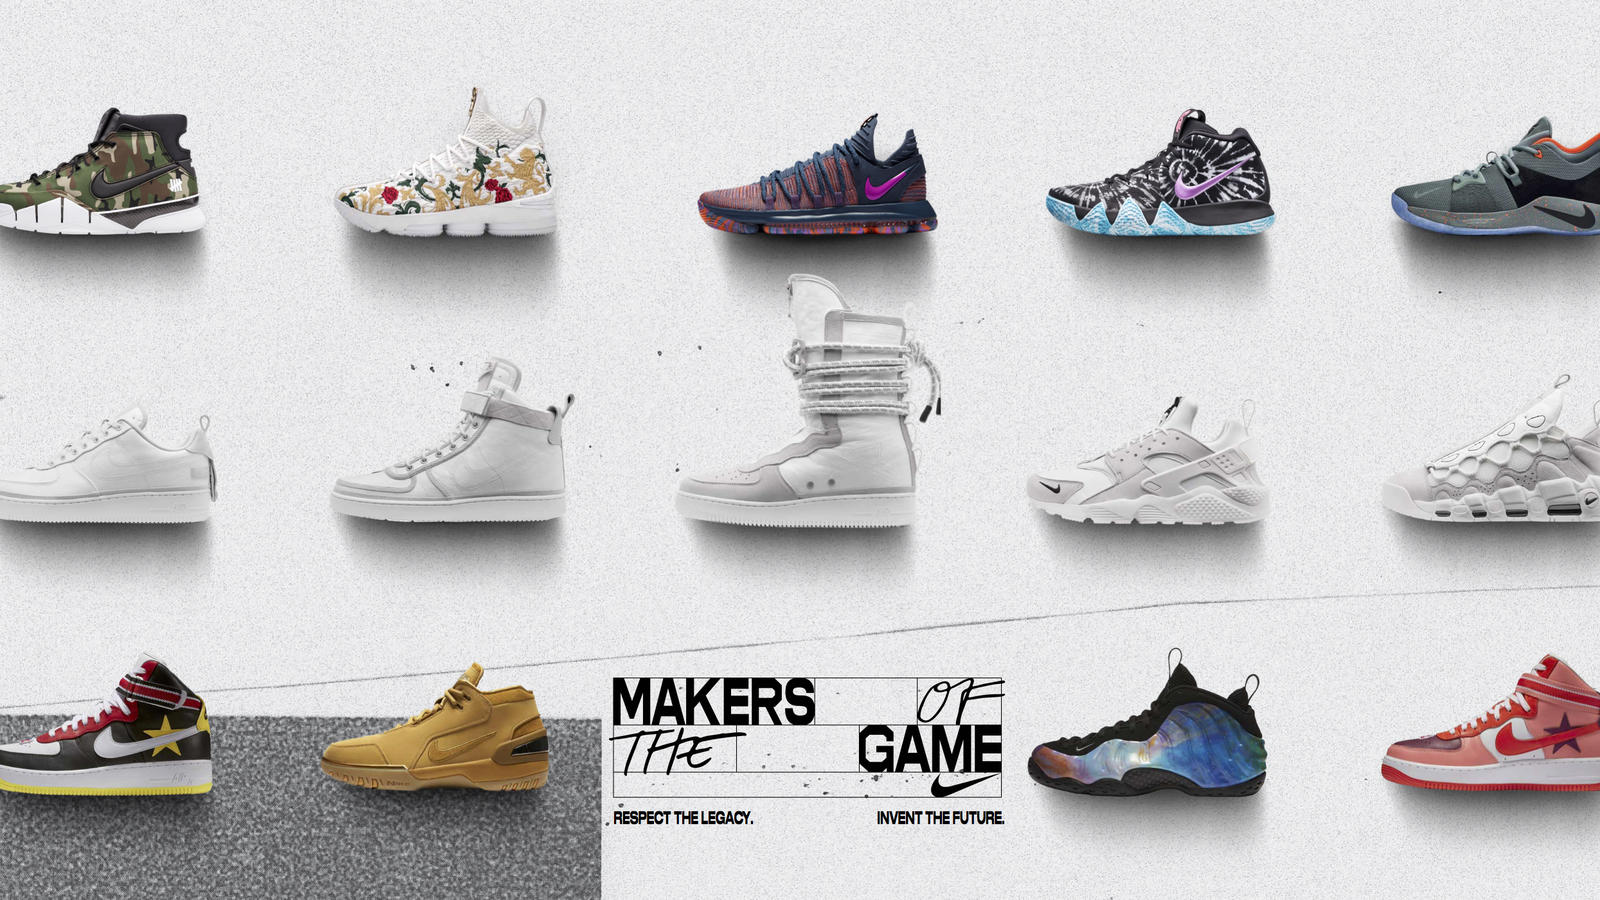 cf1f55afb5dd Nike s 2018 NBA All-Star Line Up - Nike News